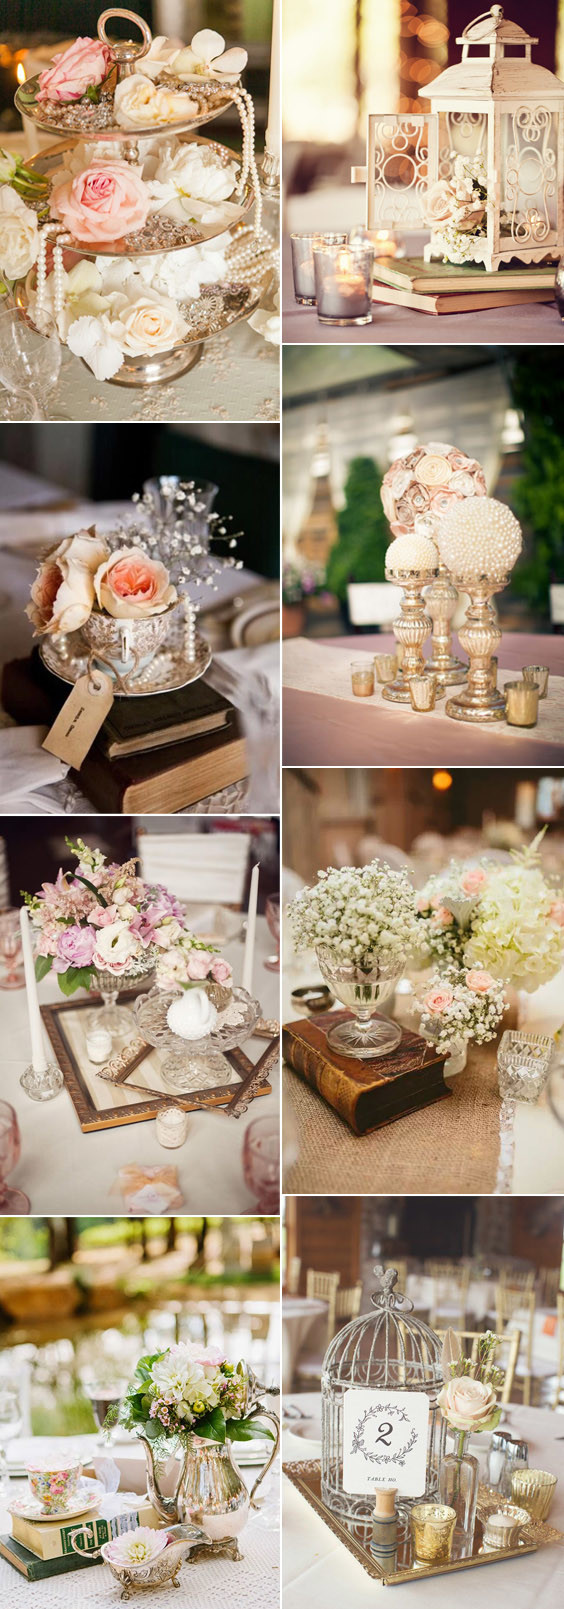 vintage centerpieces wedding ideas 2017 trends